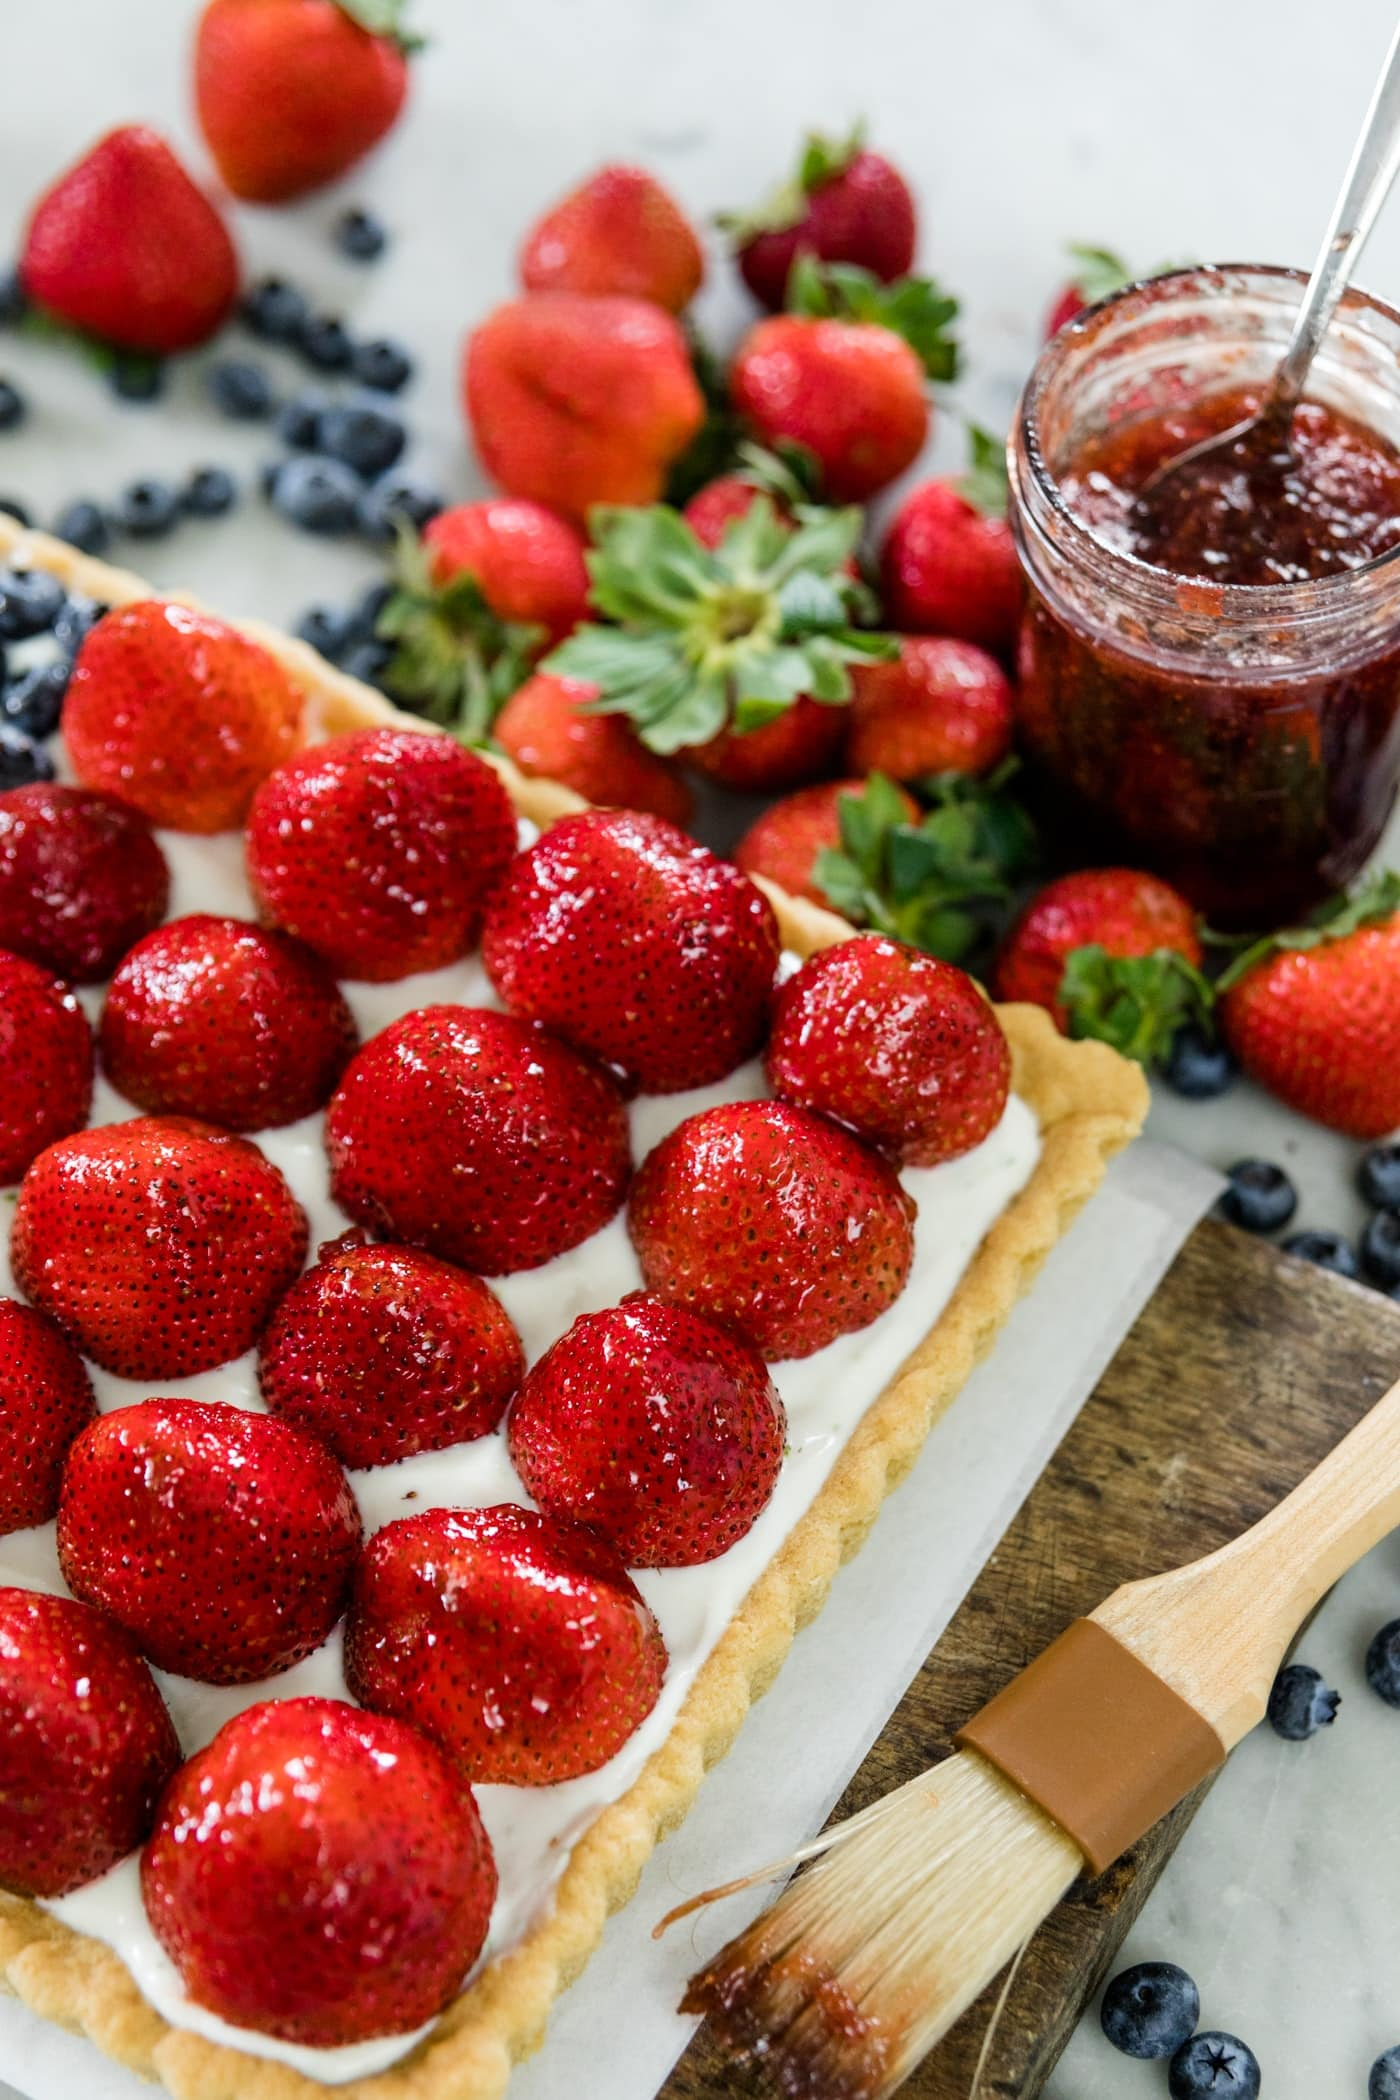 Strawberries and blueberries on a cookie tart with yogurt filling with extra strawberries, blueberries and jam in background on a wood cutting board on a marble surface